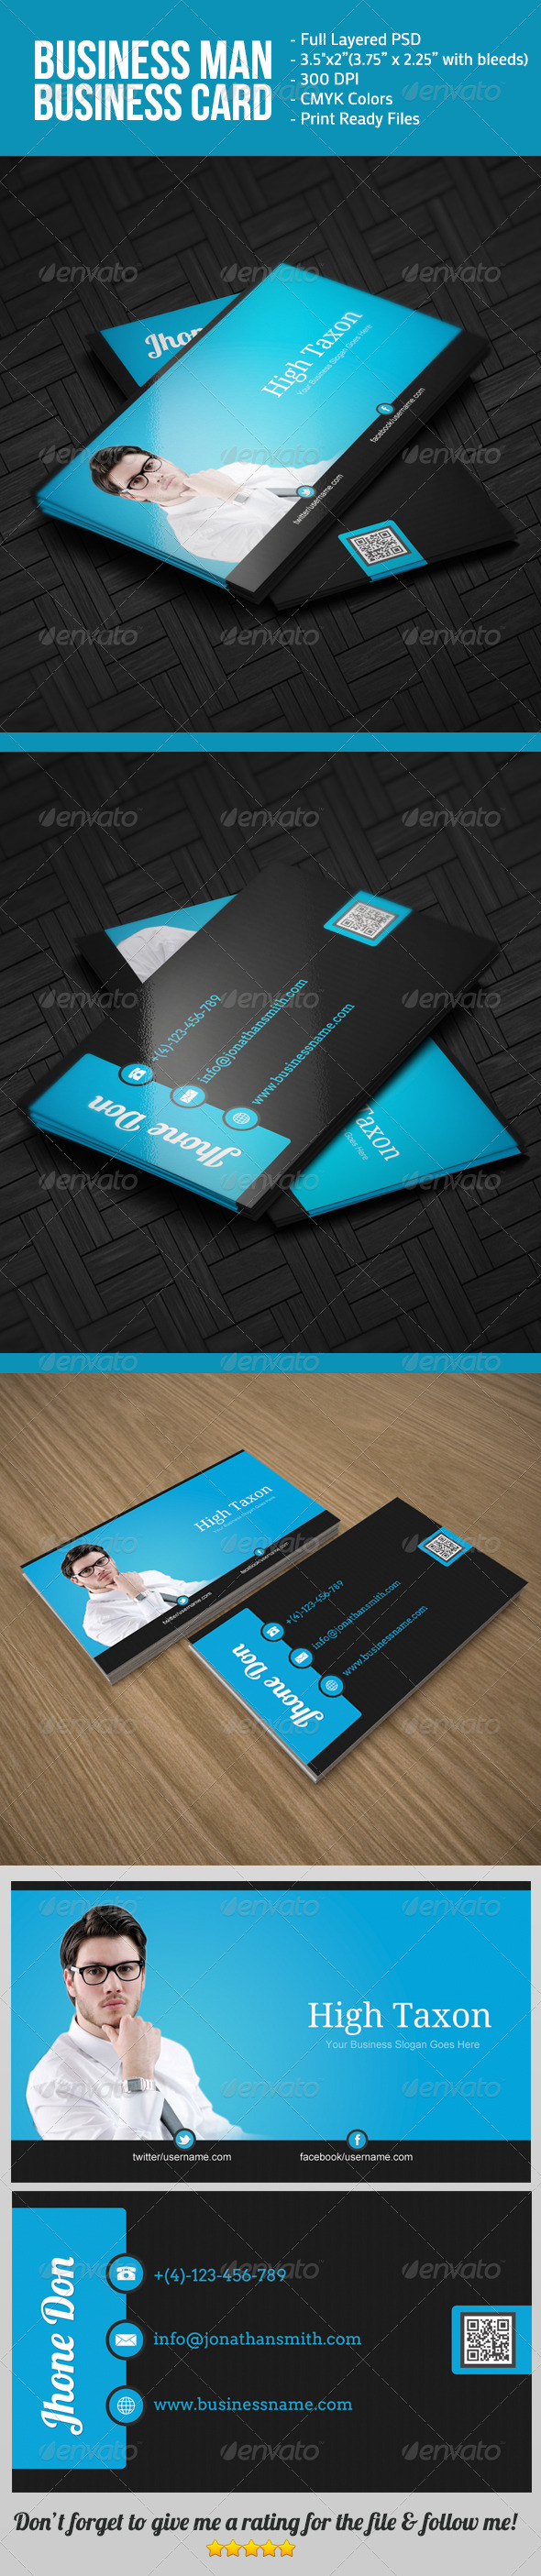 GraphicRiver Business Man BusinessCard 4231611